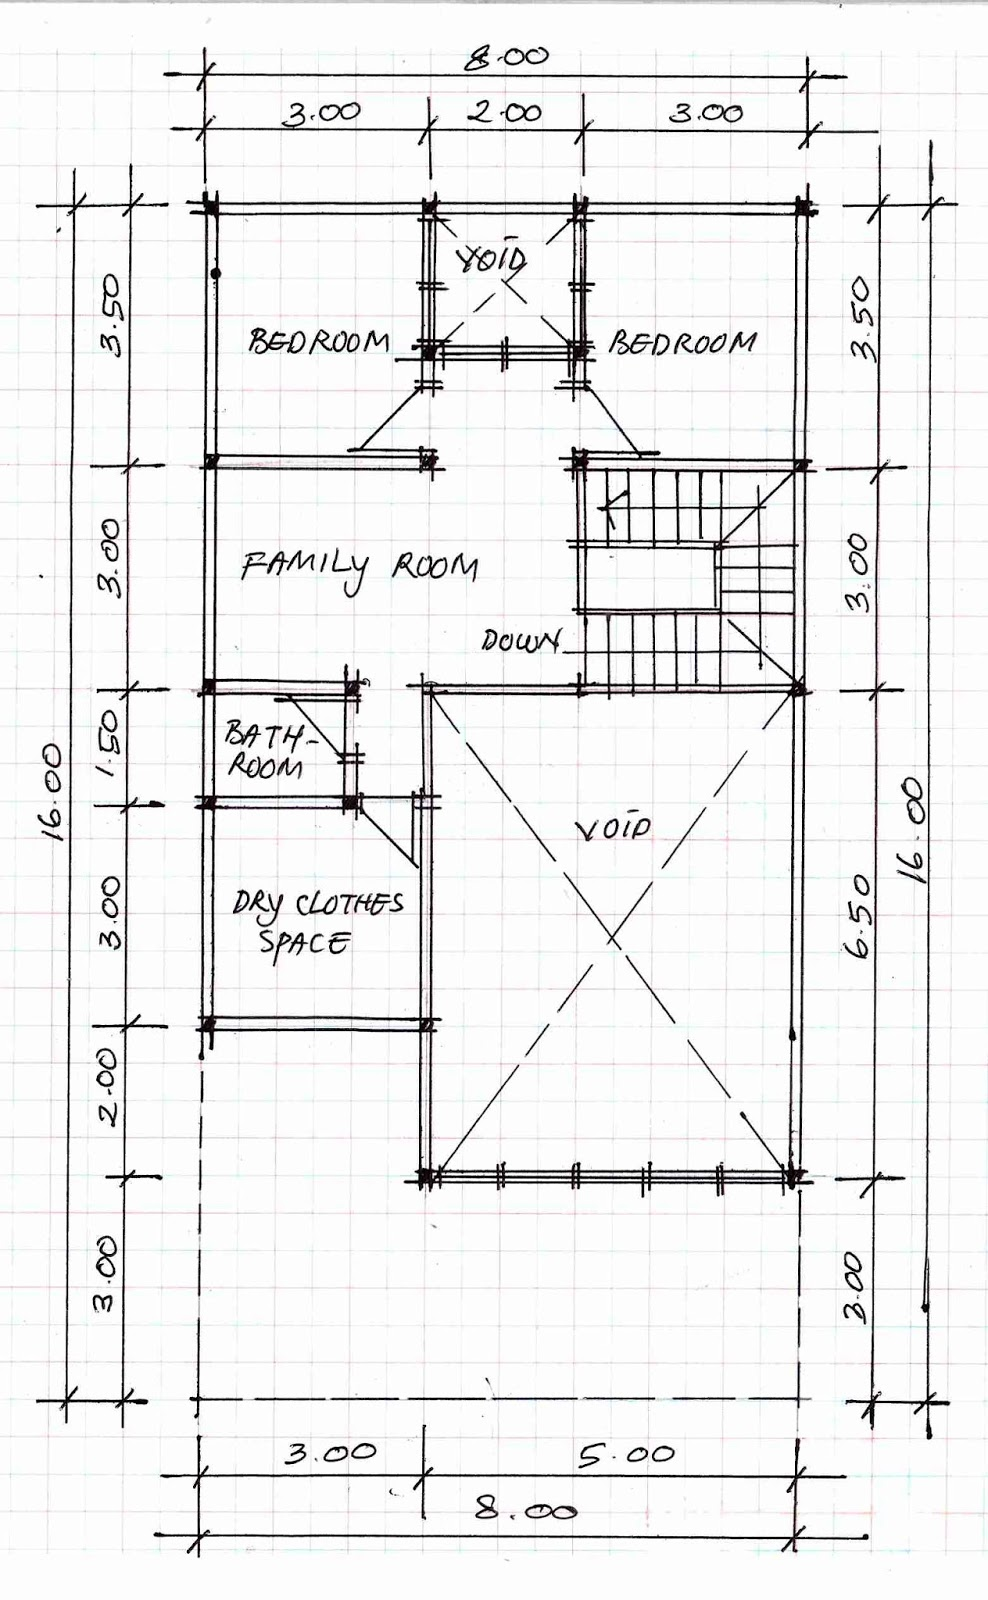 Beau 2nd Floor Plan Of Home Image 10